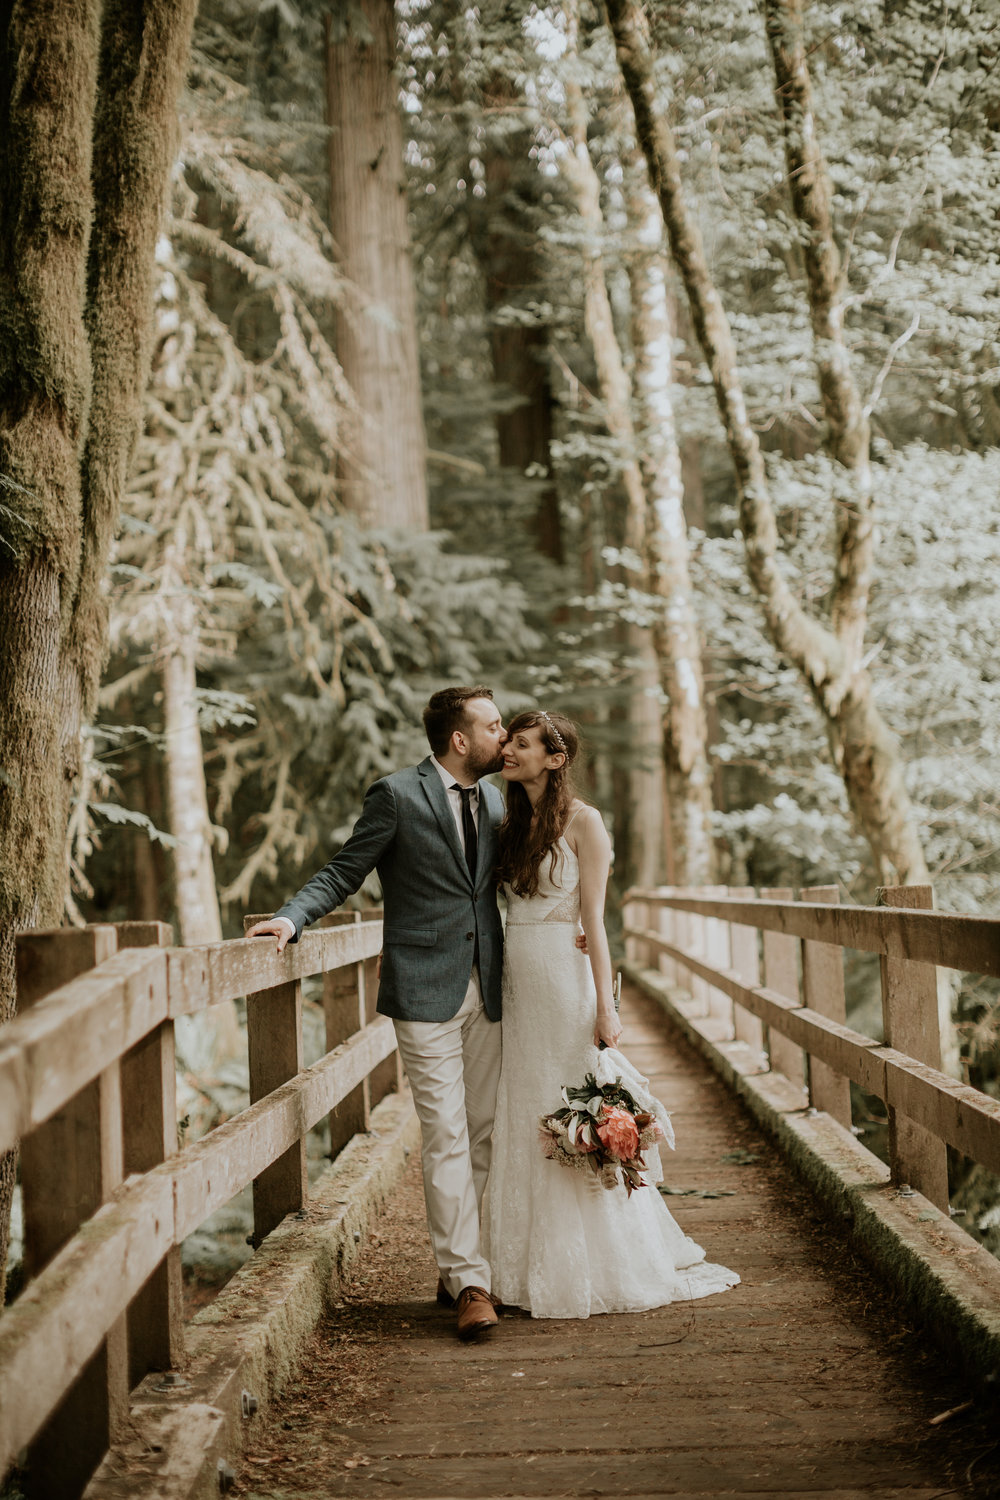 PNW-elopement-wedding-engagement-olympic national park-port angeles-hurricane ridge-lake crescent-kayla dawn photography- photographer-photography-kayladawnphoto-277.jpg